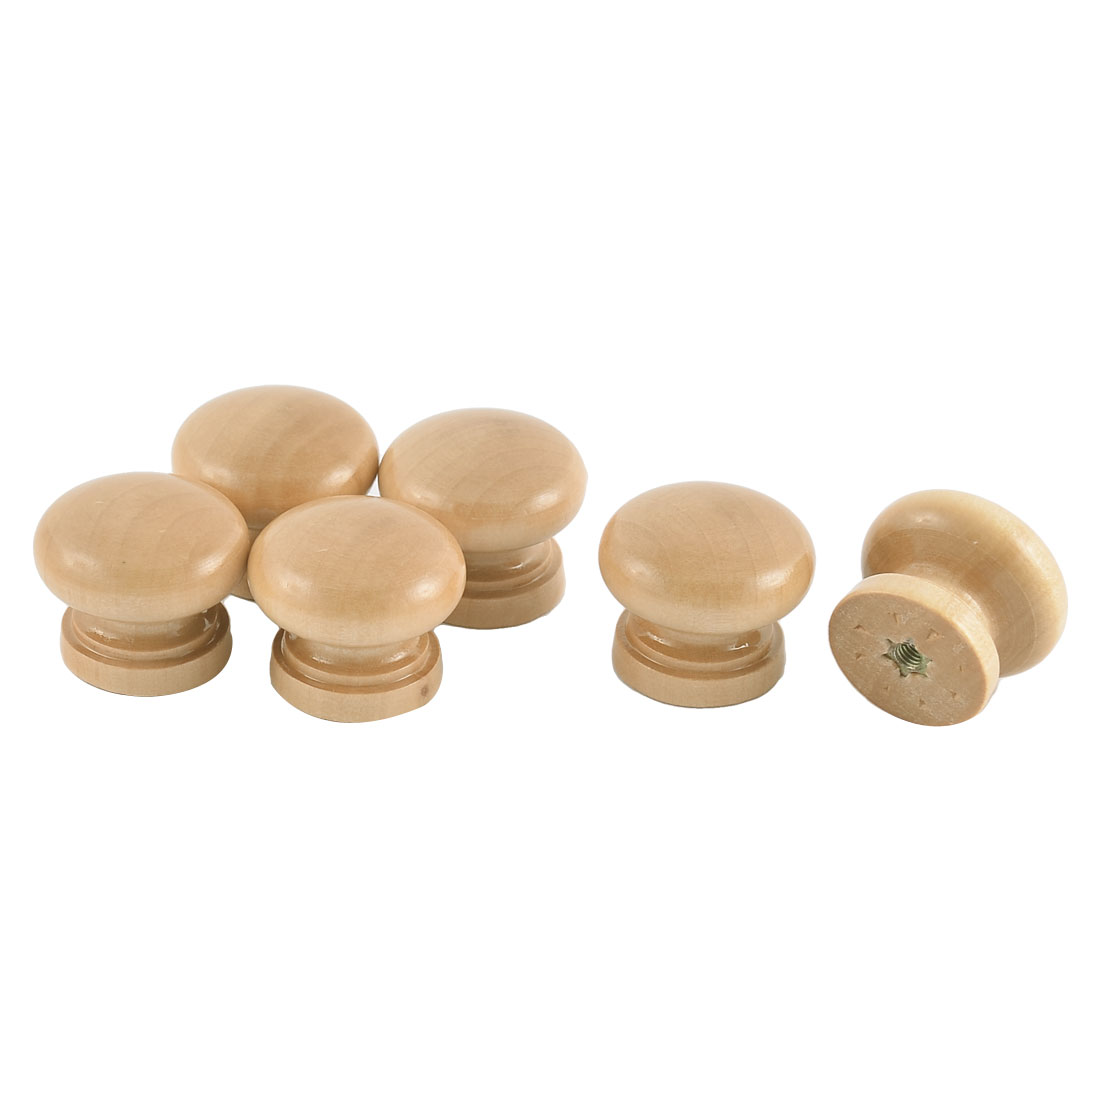 28mm Dia Drawer Cabinet Cupboard Gate Door Wooden Pull Knobs Handle Beige 6 Pcs